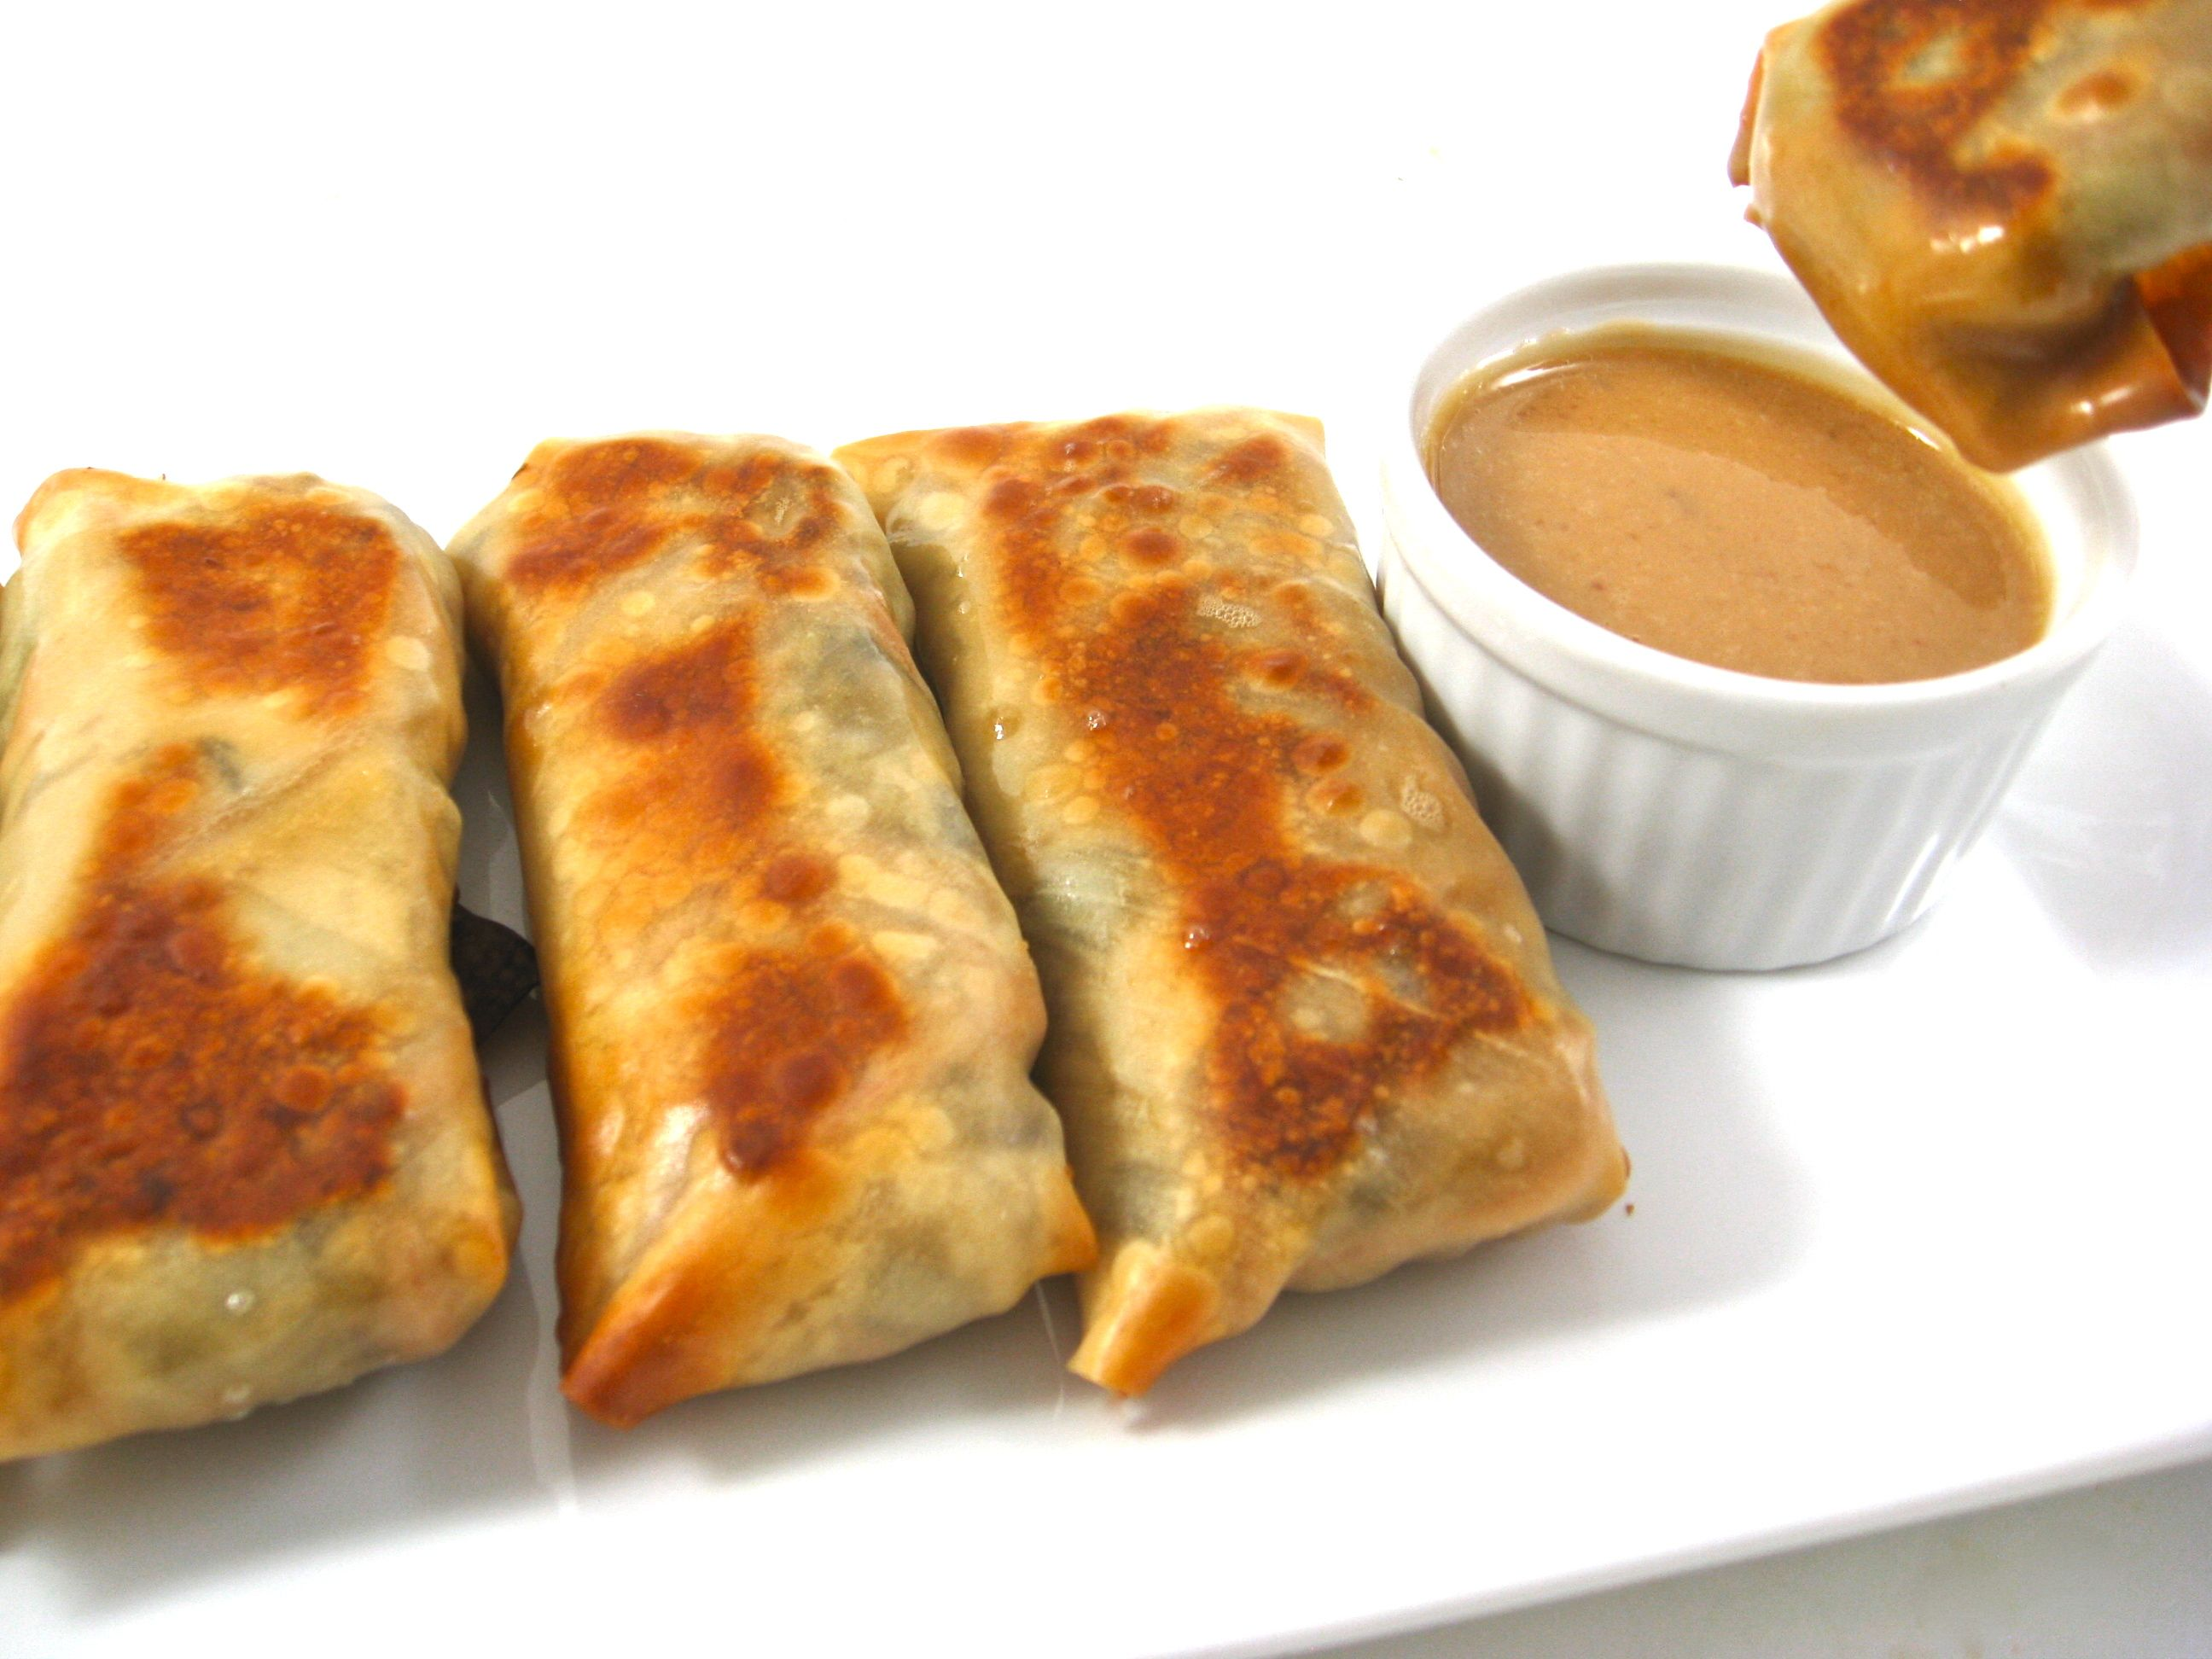 """""""Meatless Mondays"""" or any day of the week never tasted so yummy with these skinny vegetarian egg rolls! You normally wouldn't think egg rolls would be healthy but these actually are! They're loaded with good-for-you broccoli slaw, cabbage"""